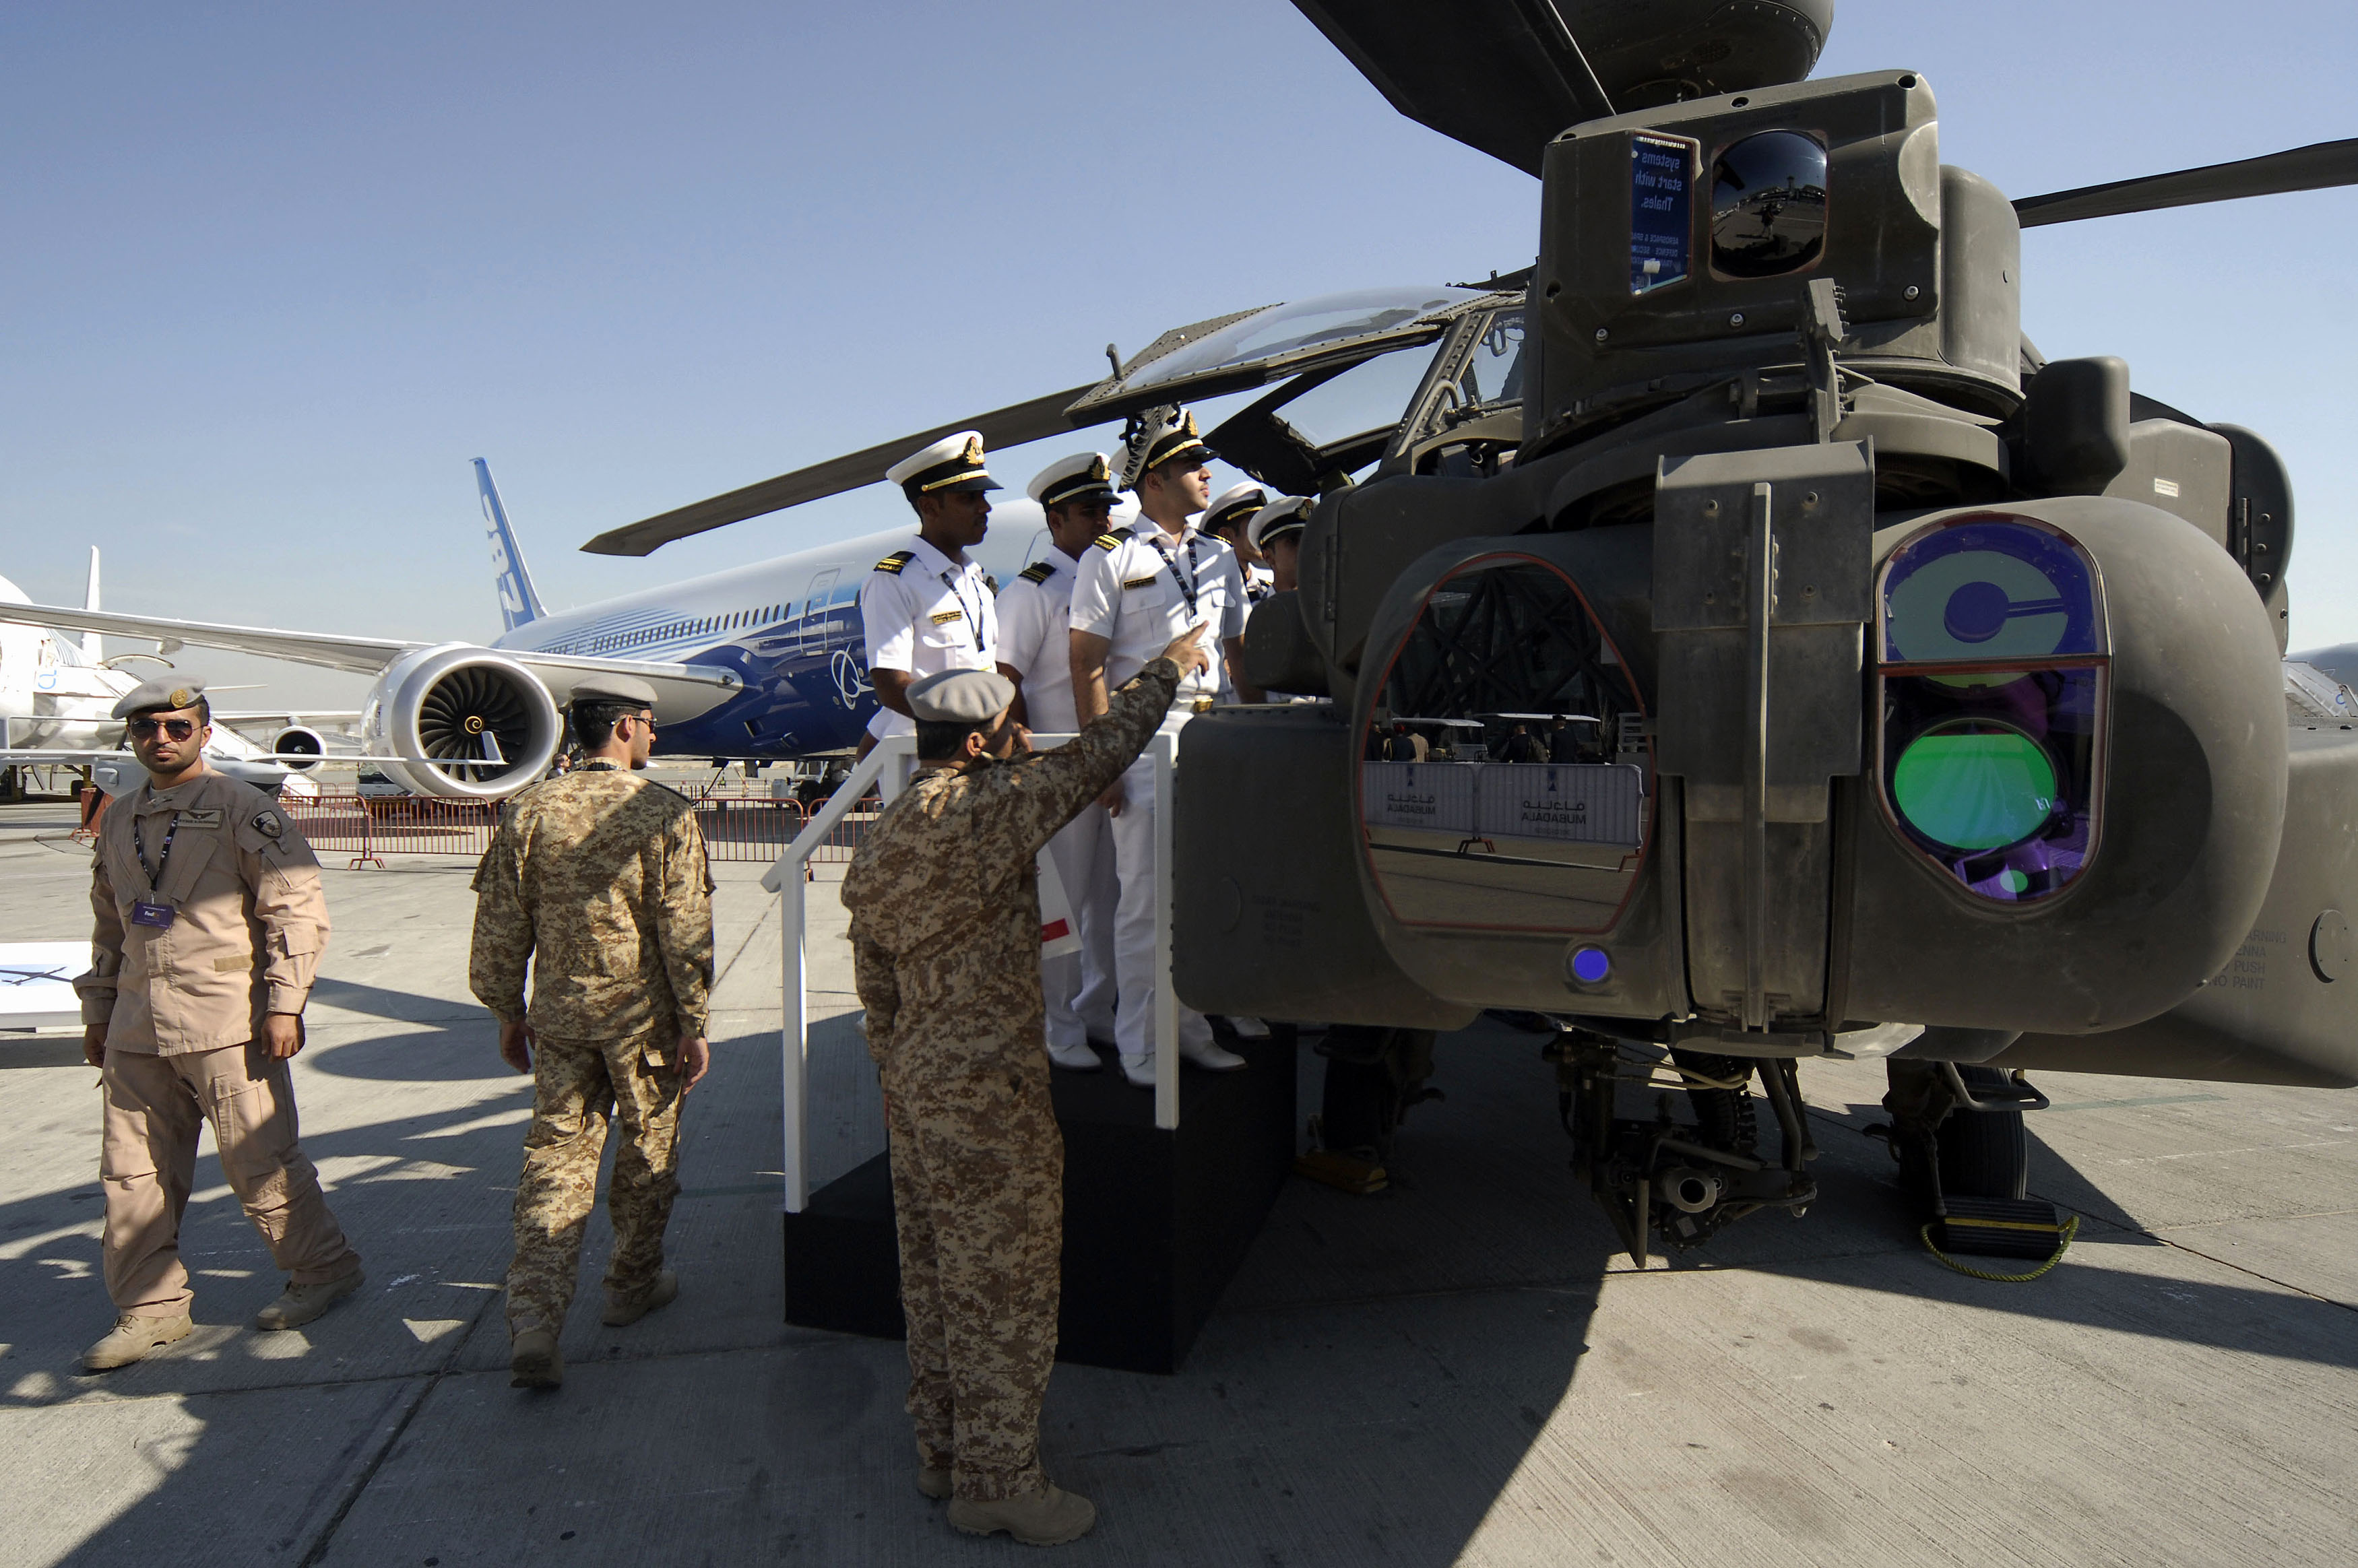 FILE - Visitors look at a AH-64D Apache helicopter during an airshow in Dubai, UAE.